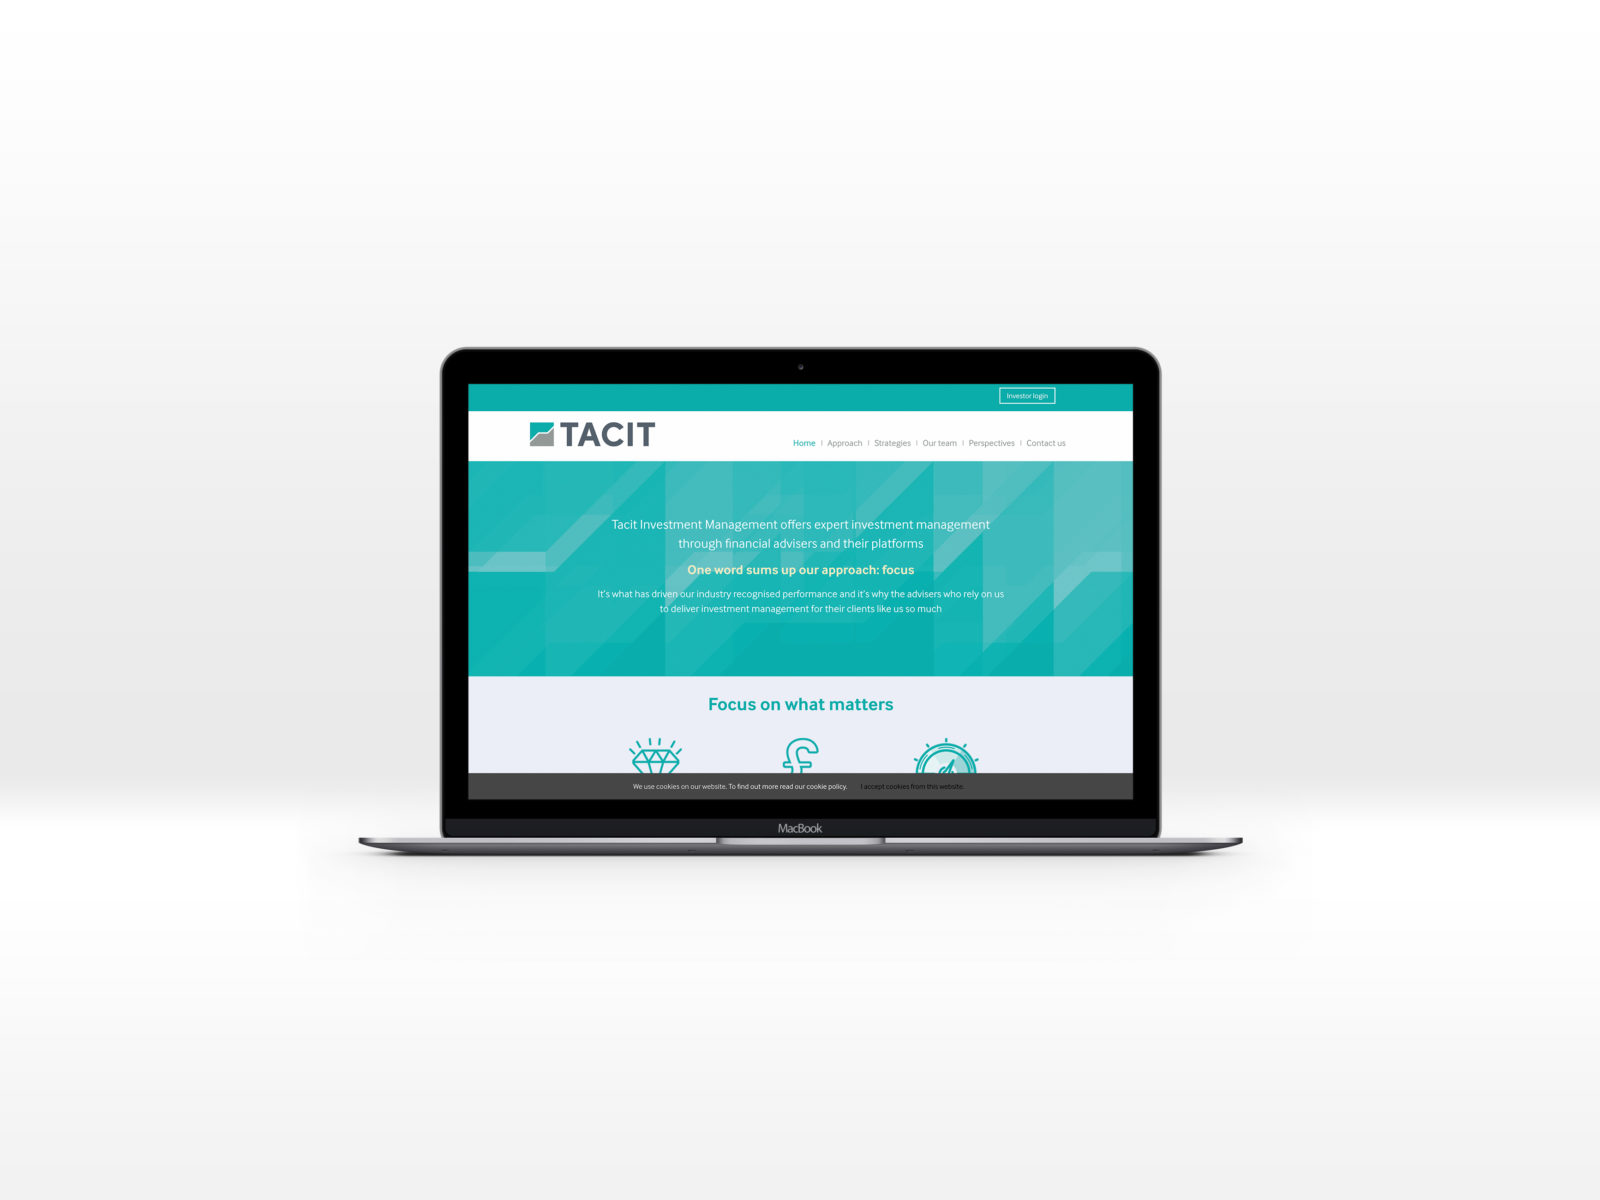 Tacit homepage displayed on a Mac laptop computer